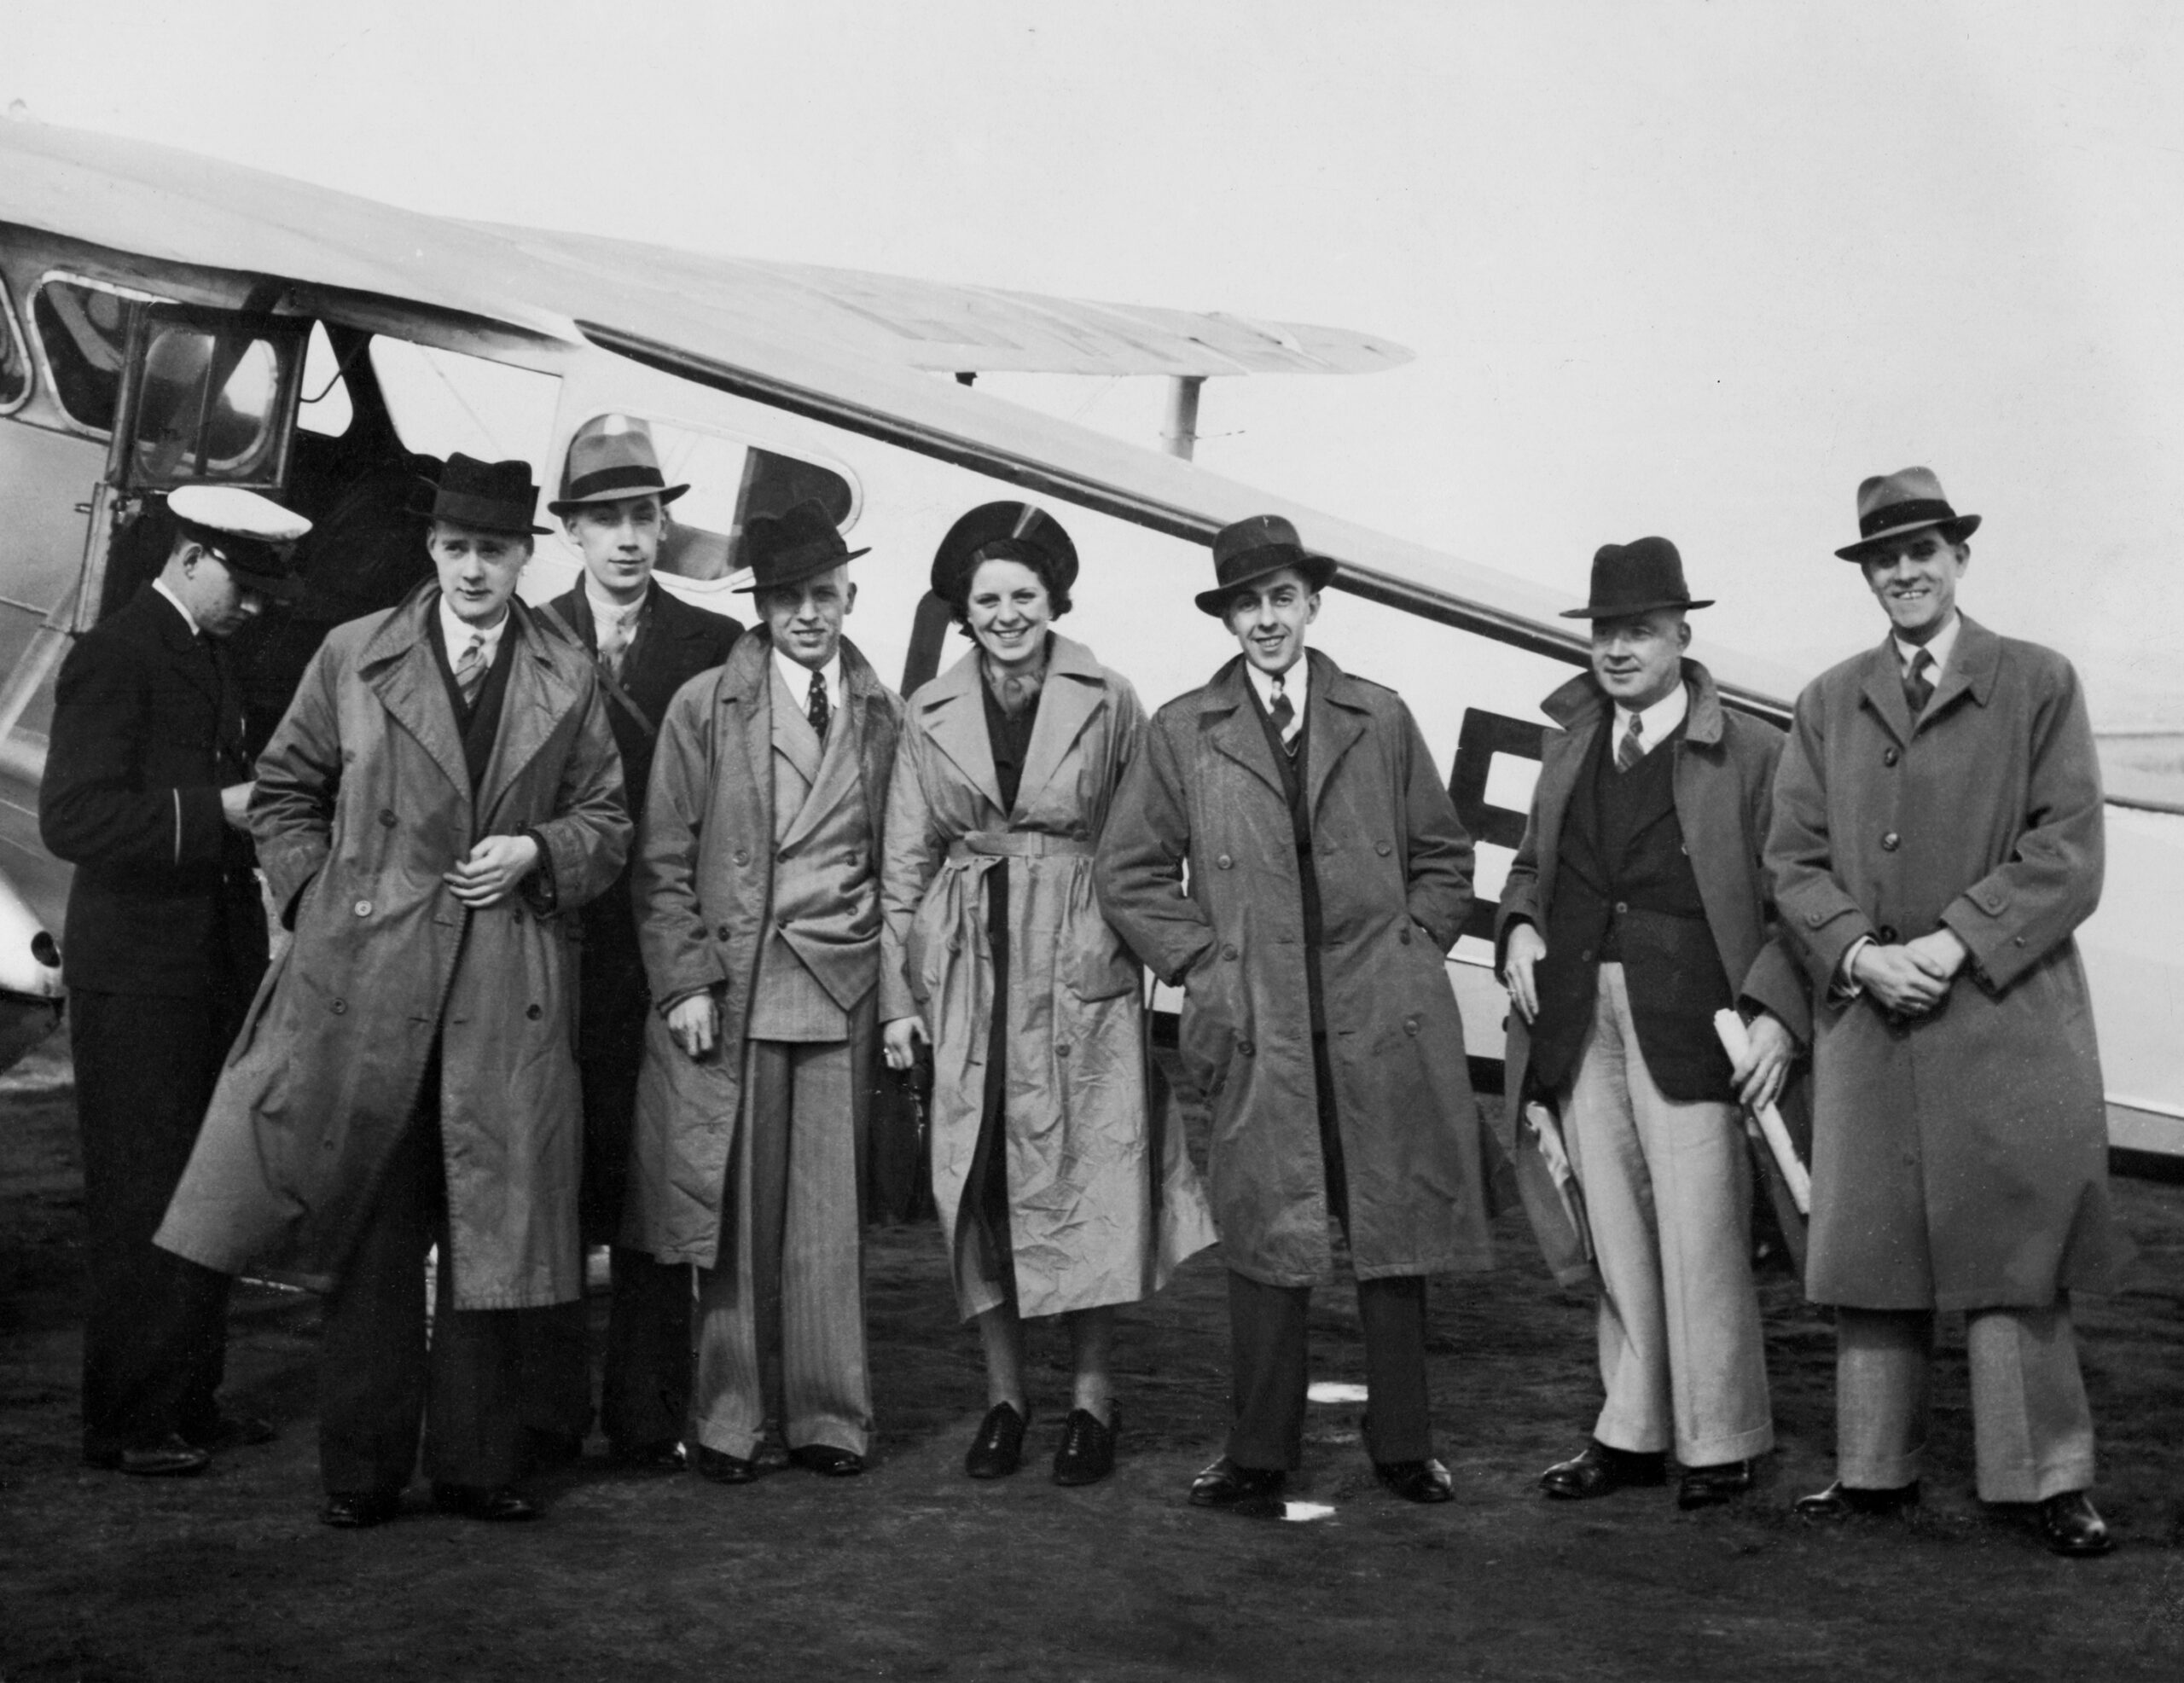 Photograph of passengers about to board a de Havilland Dragon Rapide in 1938 - 2019 scan of the photo after repair